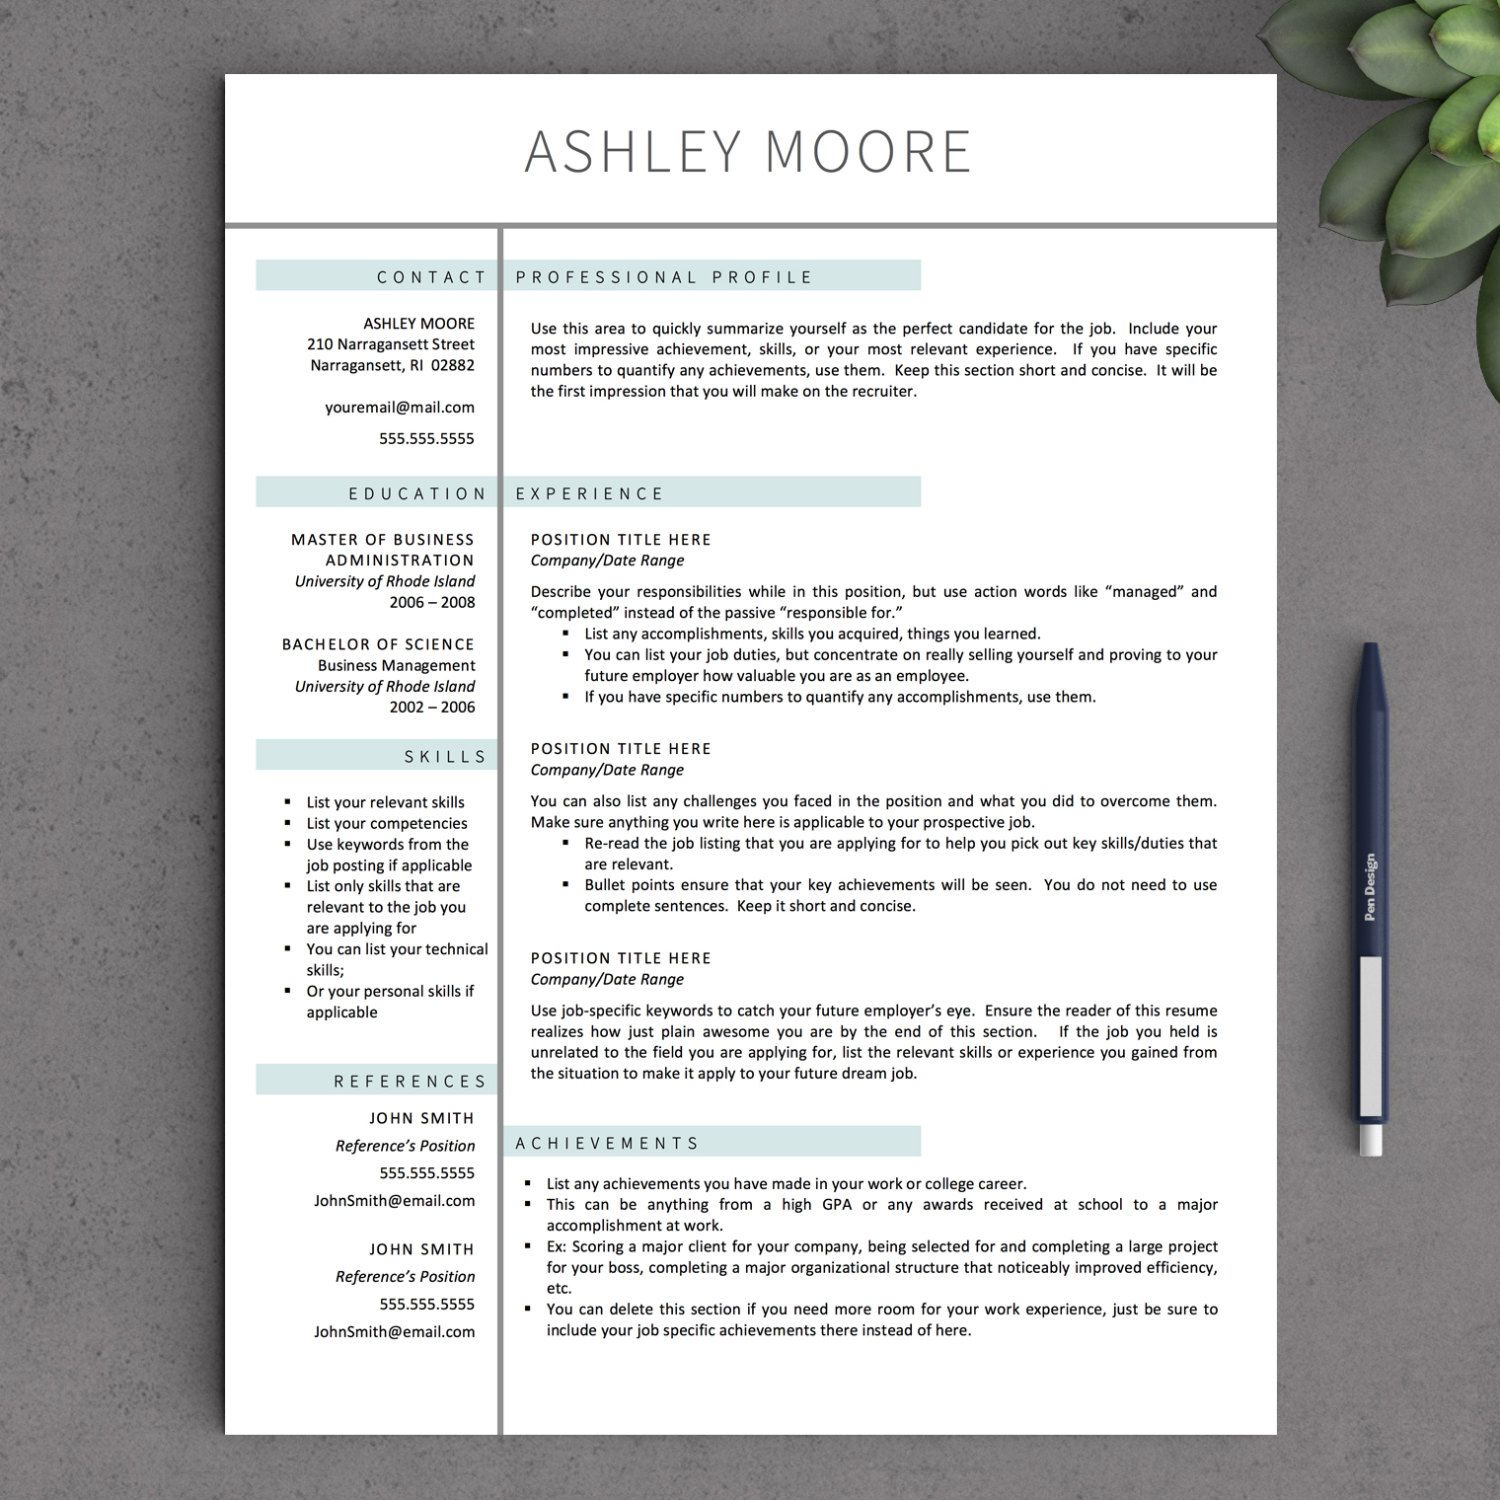 Free Sample Resume Templates Examples: Apple Pages Resume Template Download Apple Pages Resume